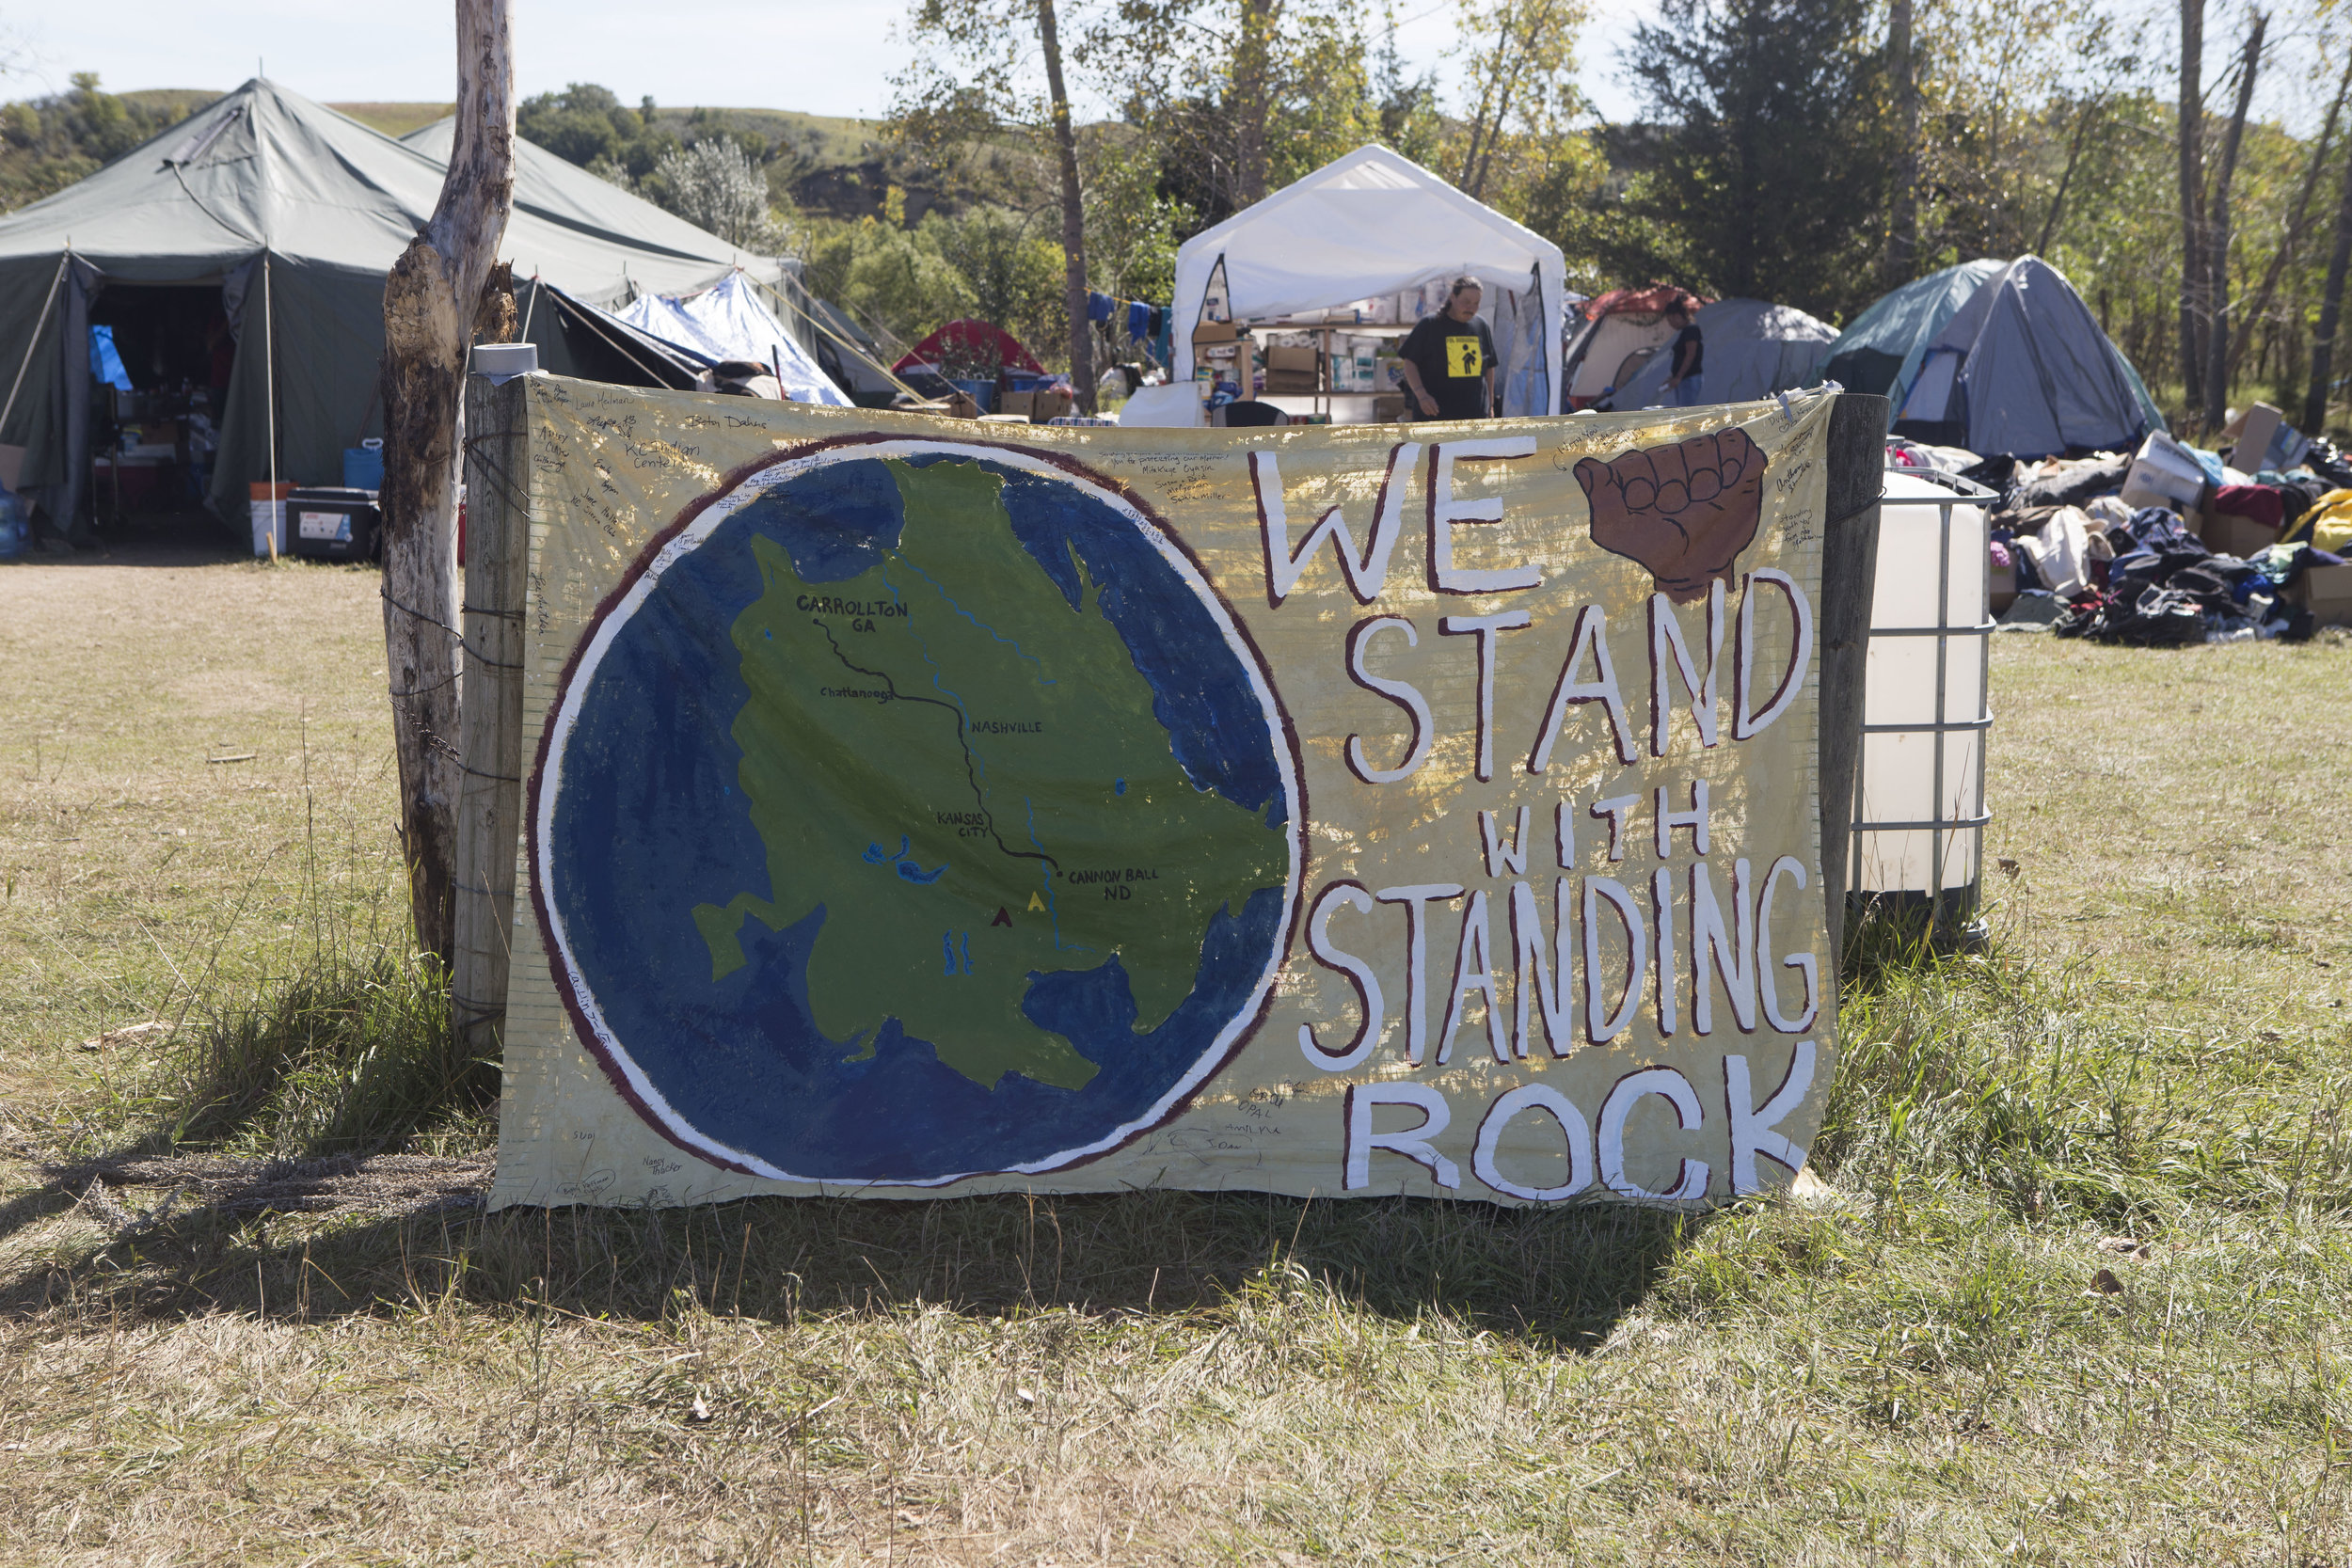 Stand W_Standing Rock.jpg